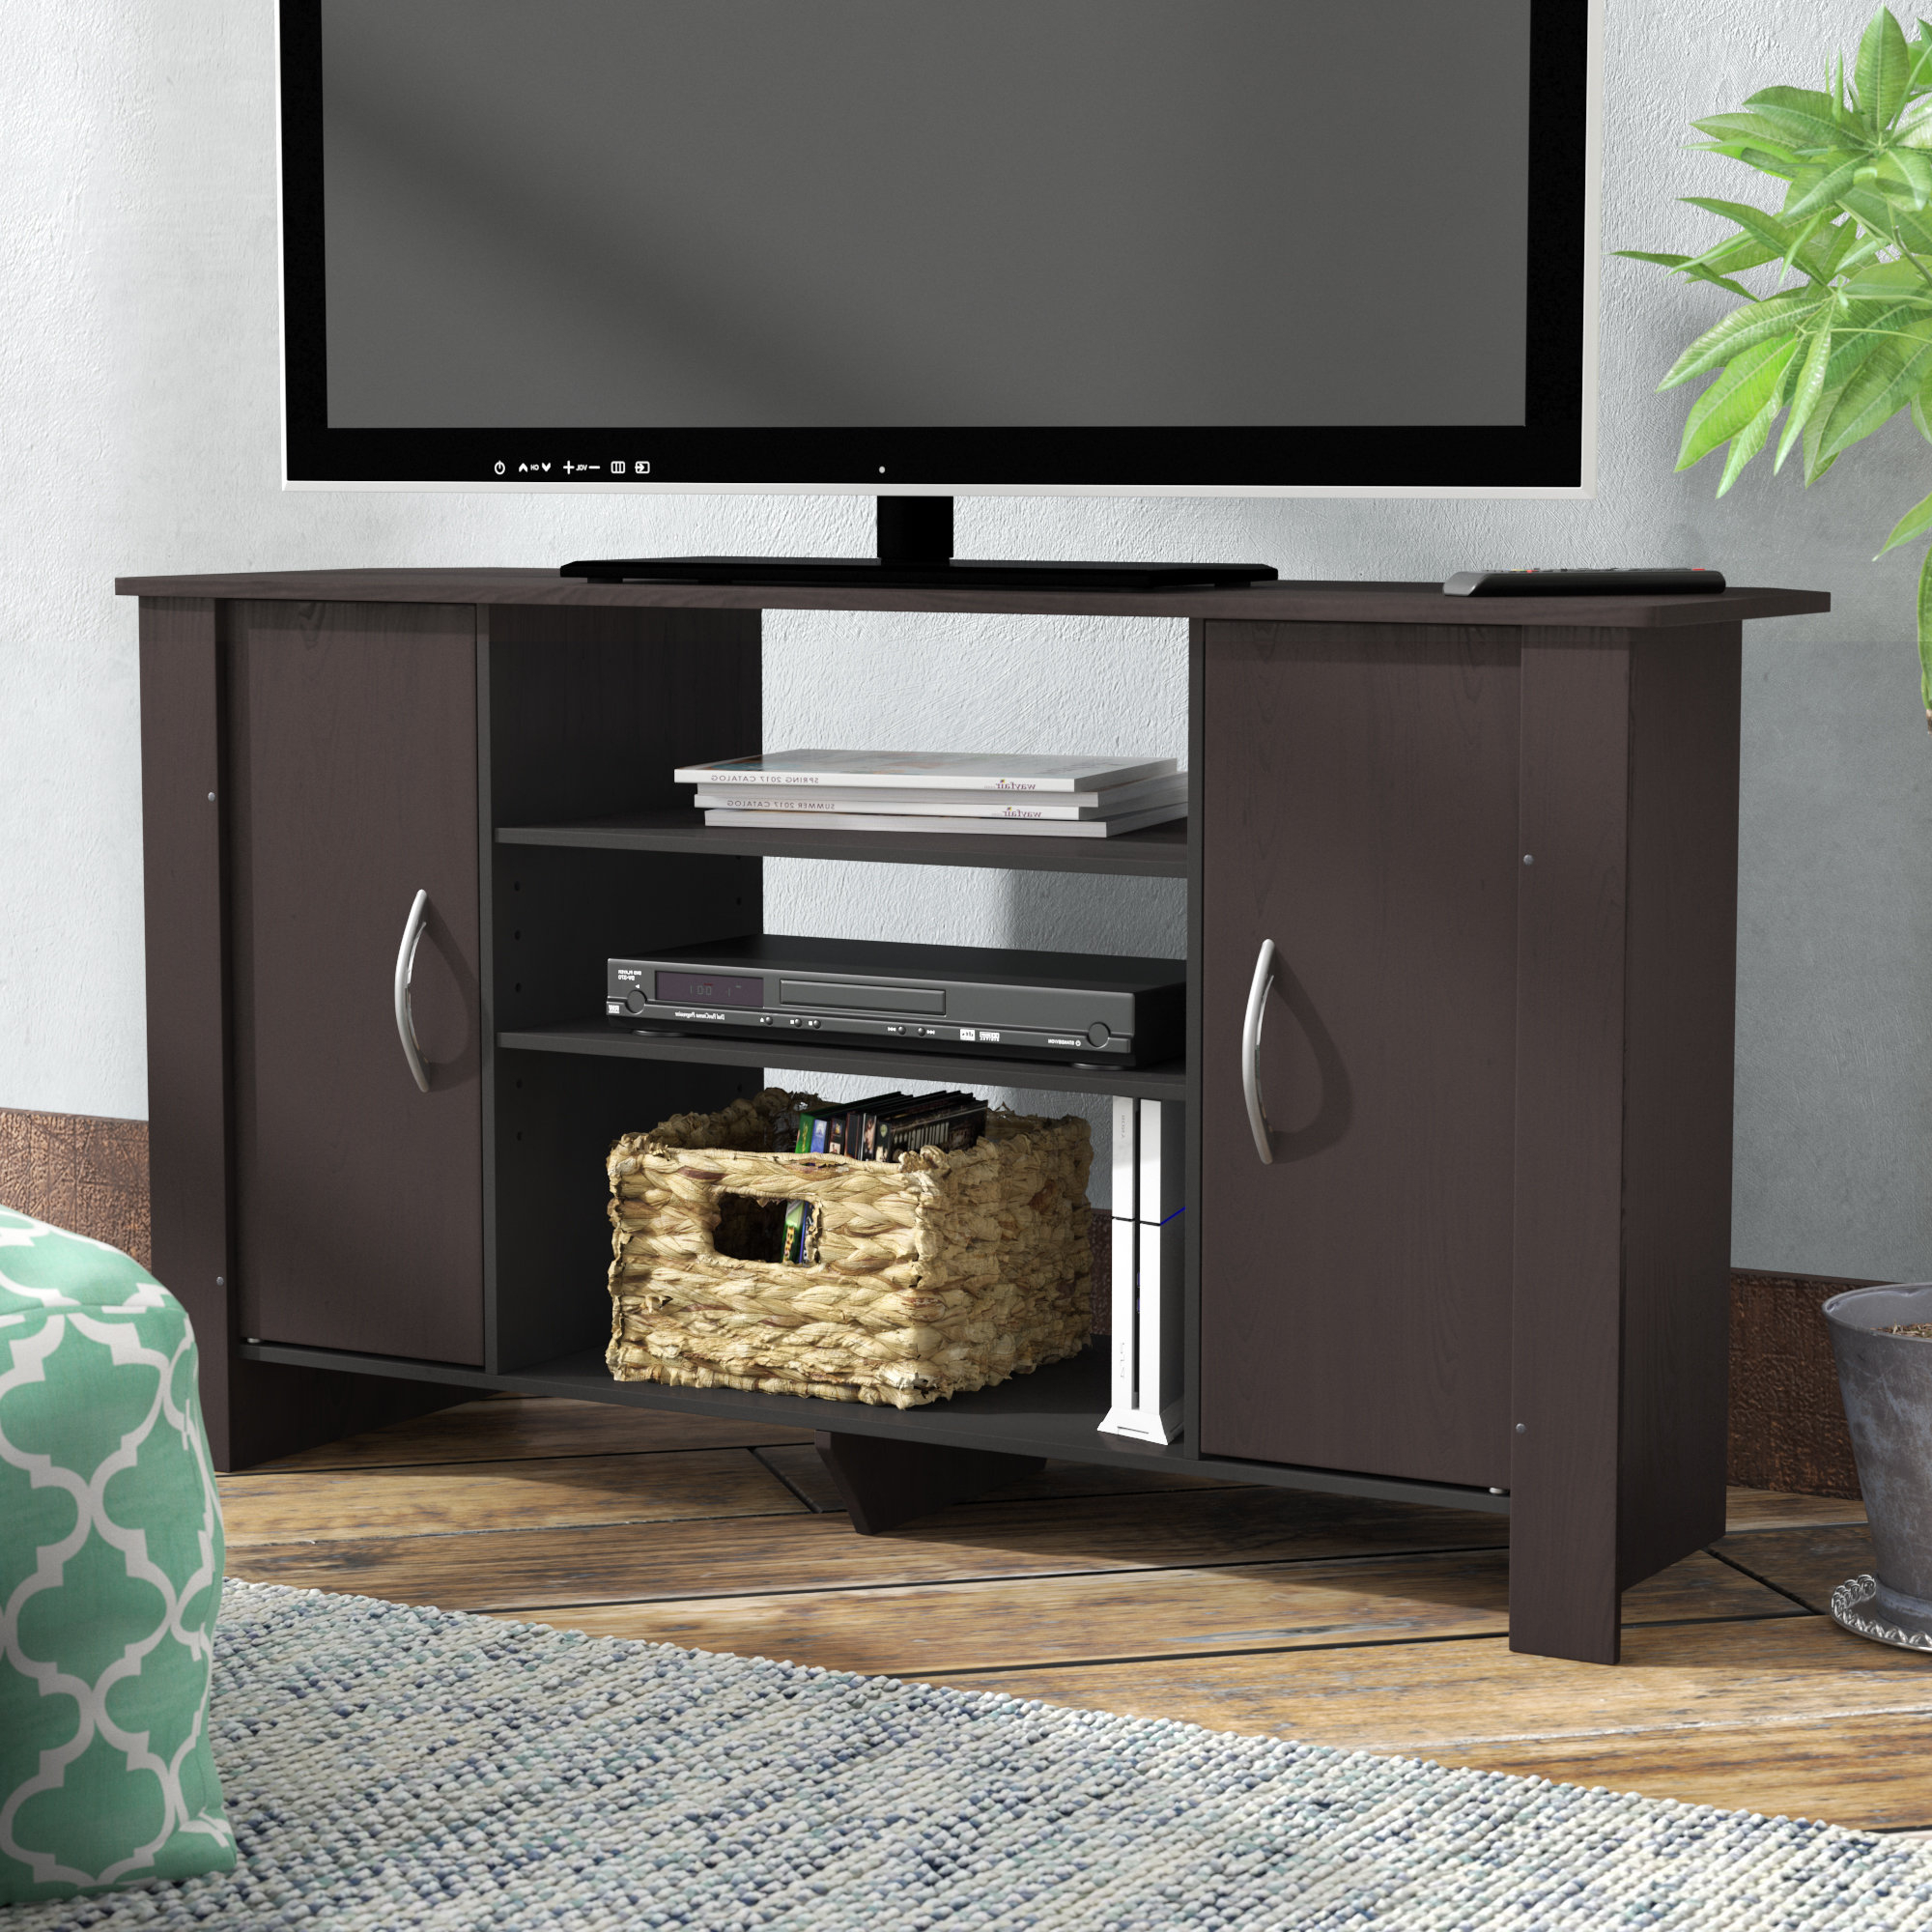 Tv Stands With Rounded Corners With Most Up To Date Curved Tv Stand (View 16 of 20)